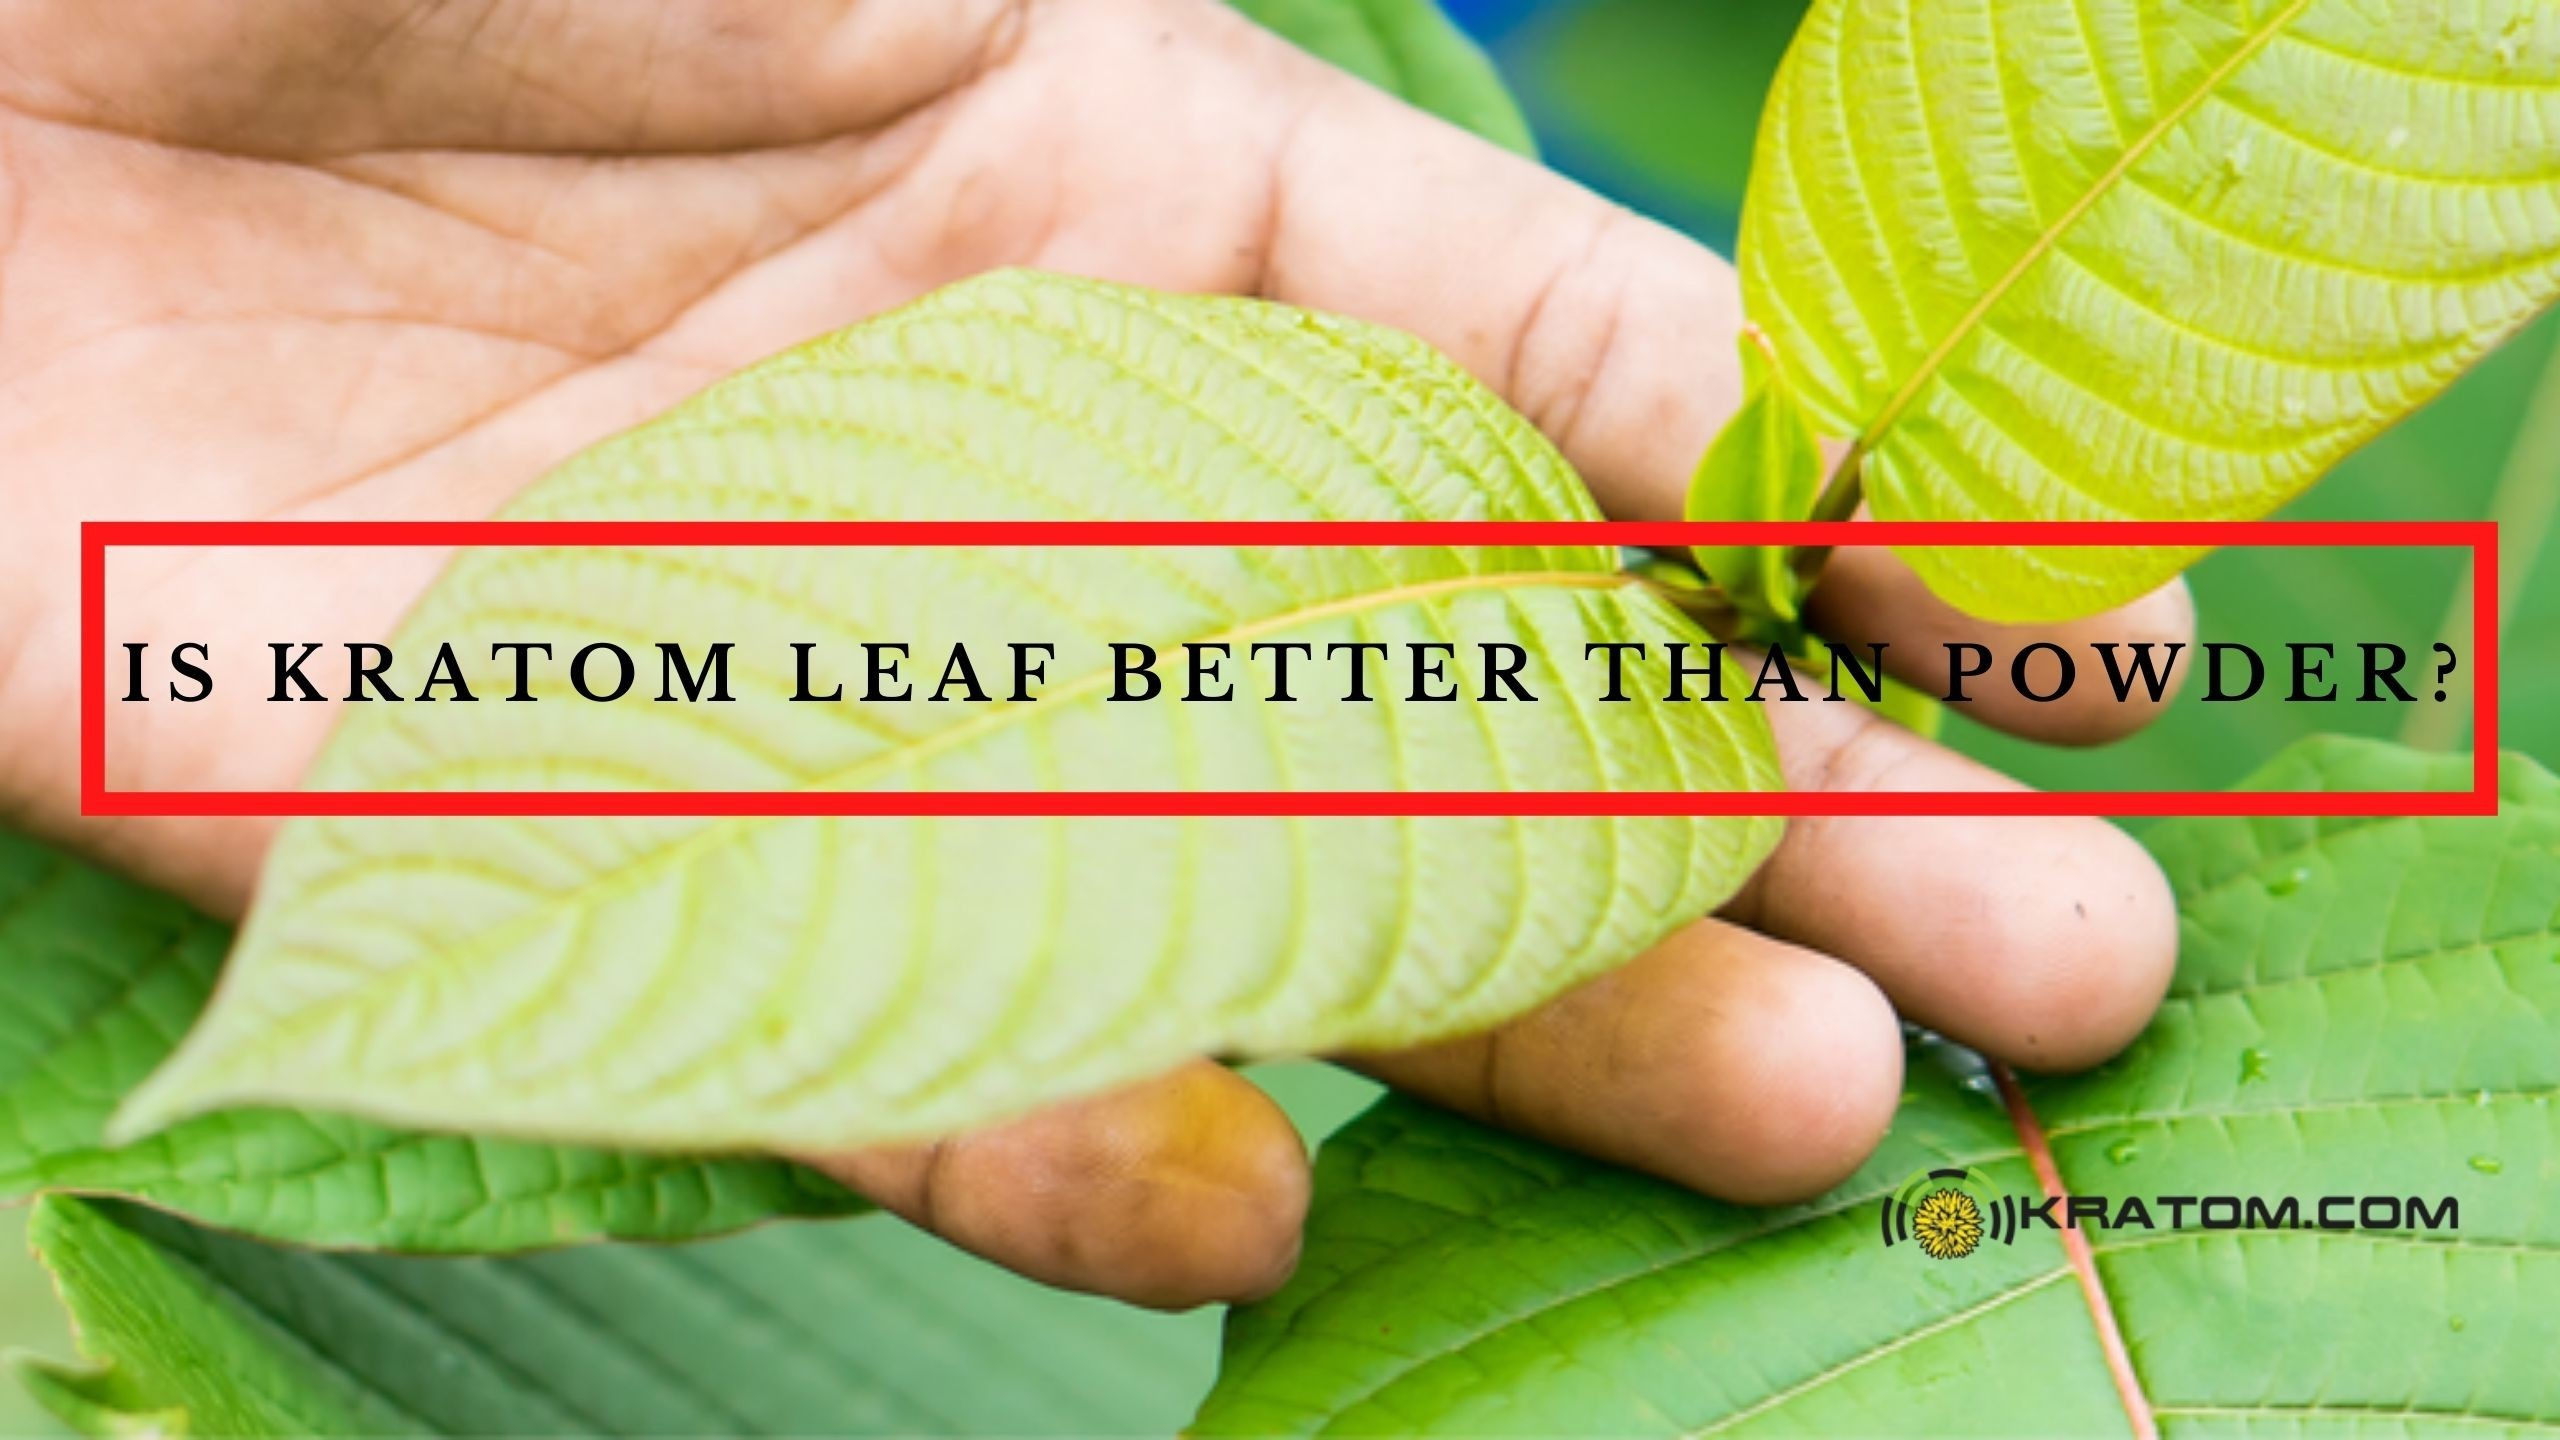 Is Kratom Leaf Better Than Powder?